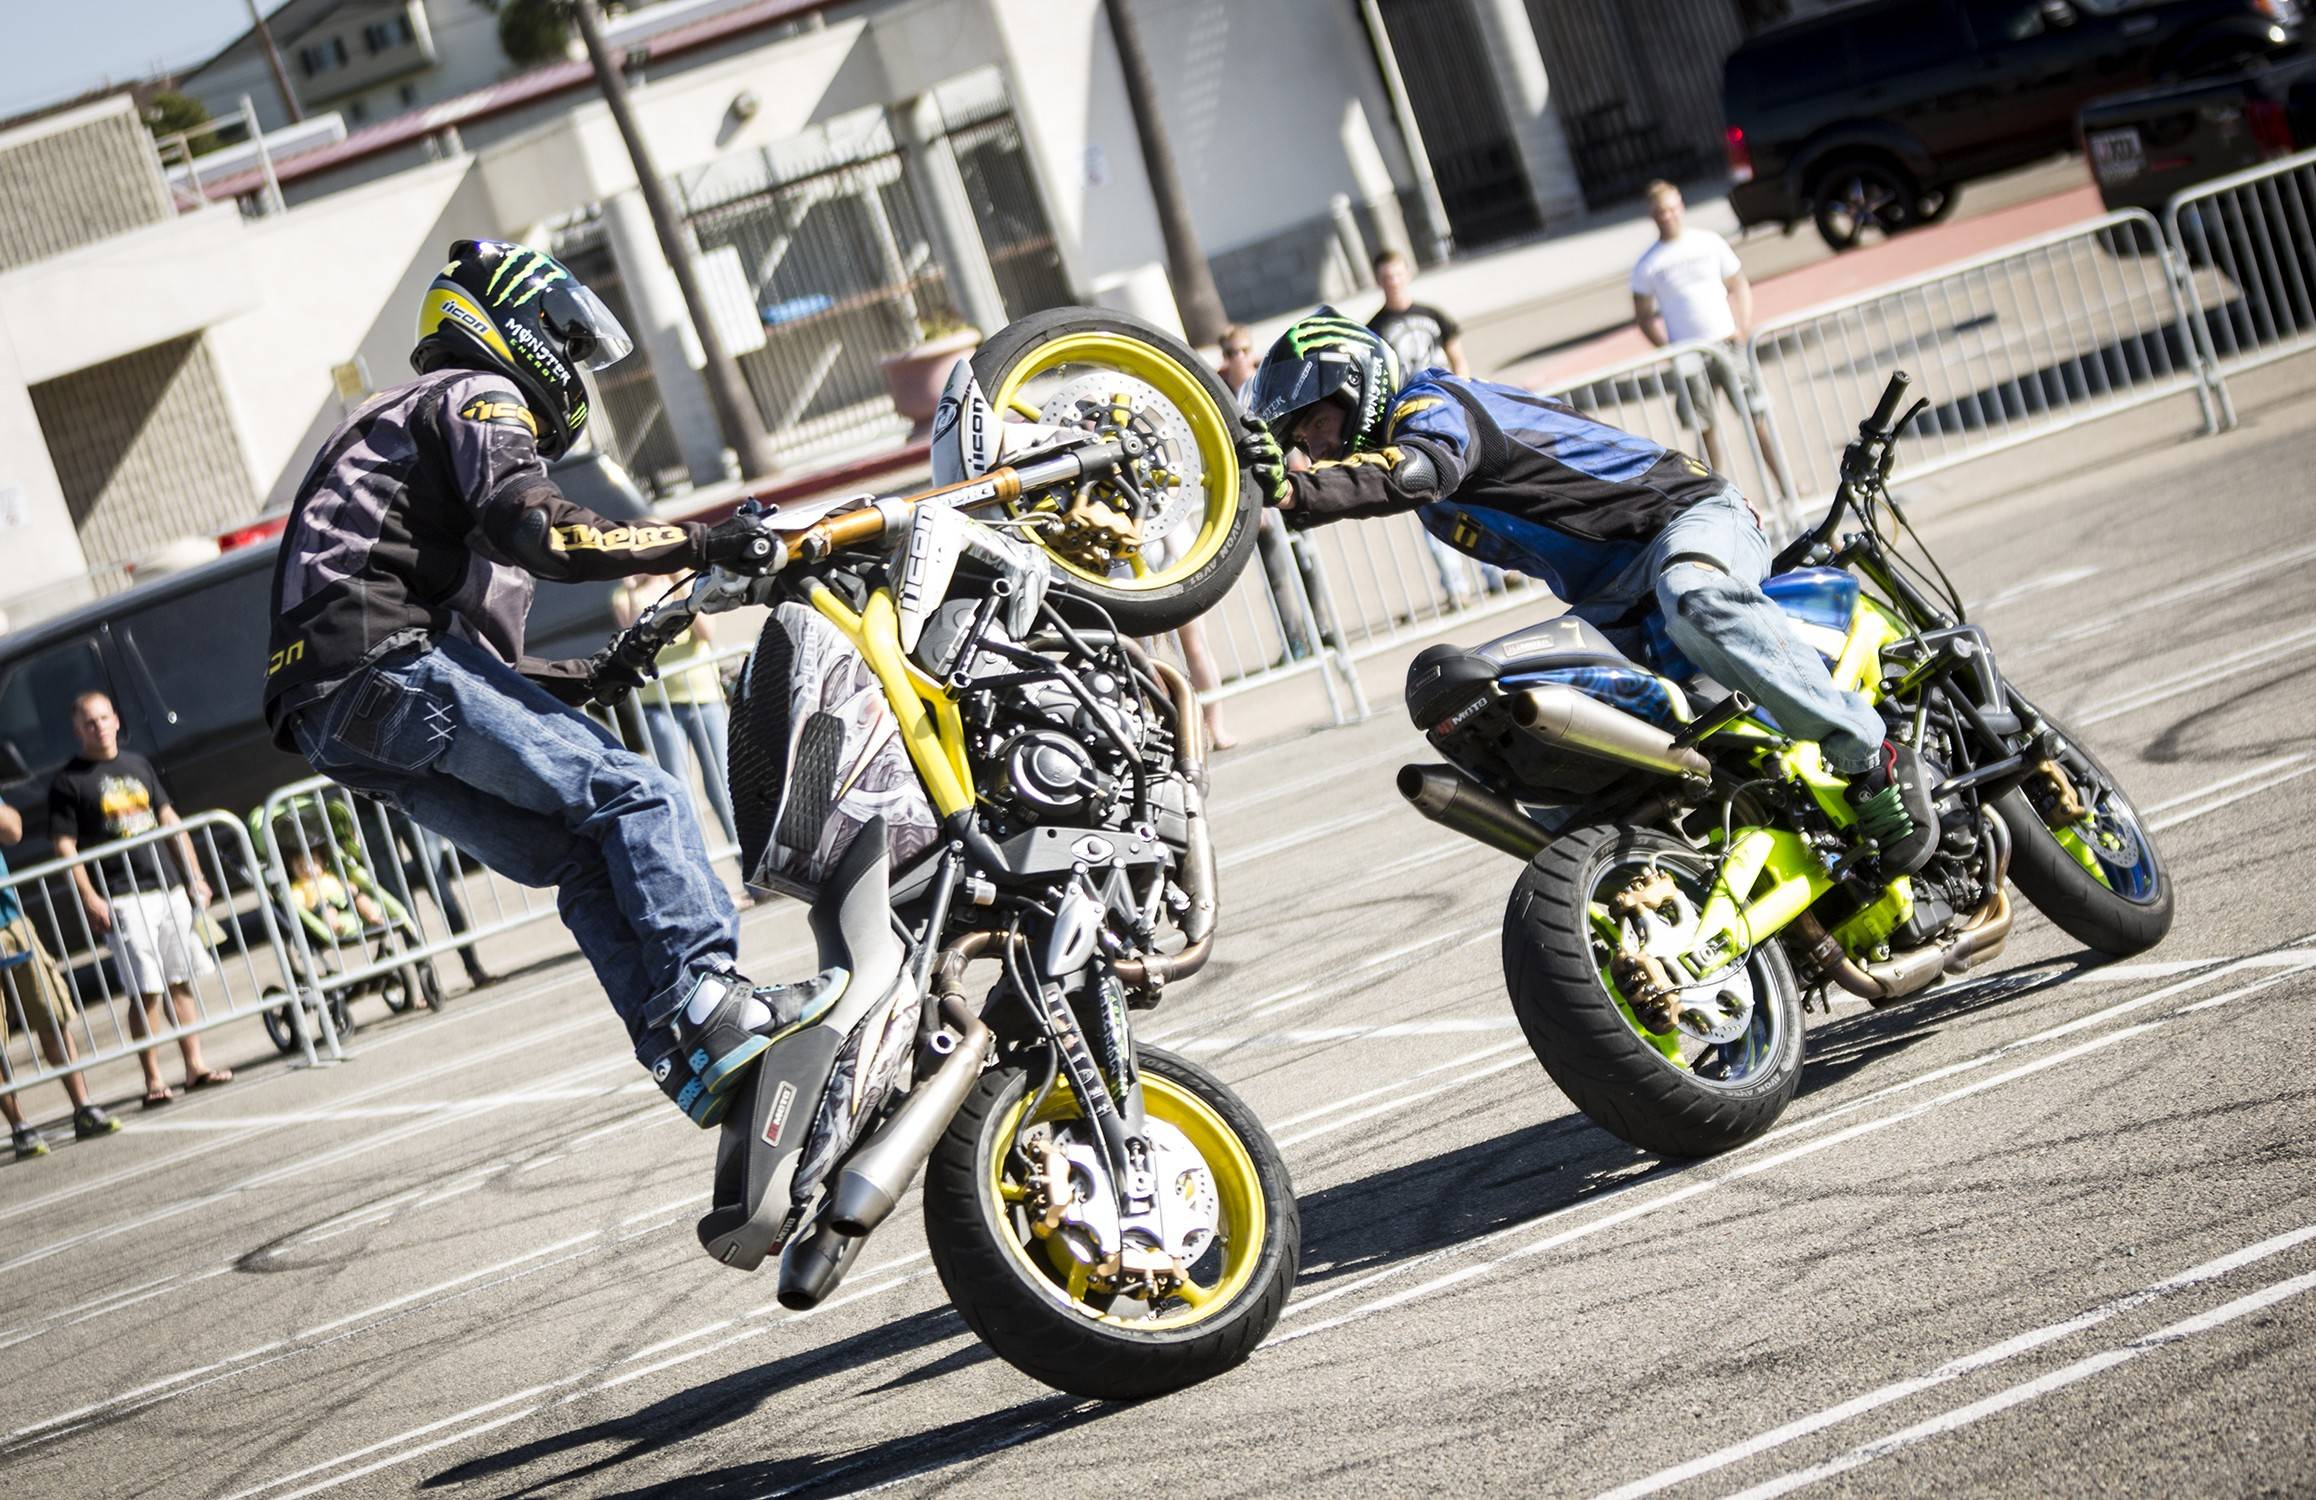 Wallpapers For > R15 Bike Stunts Wallpapers Hd